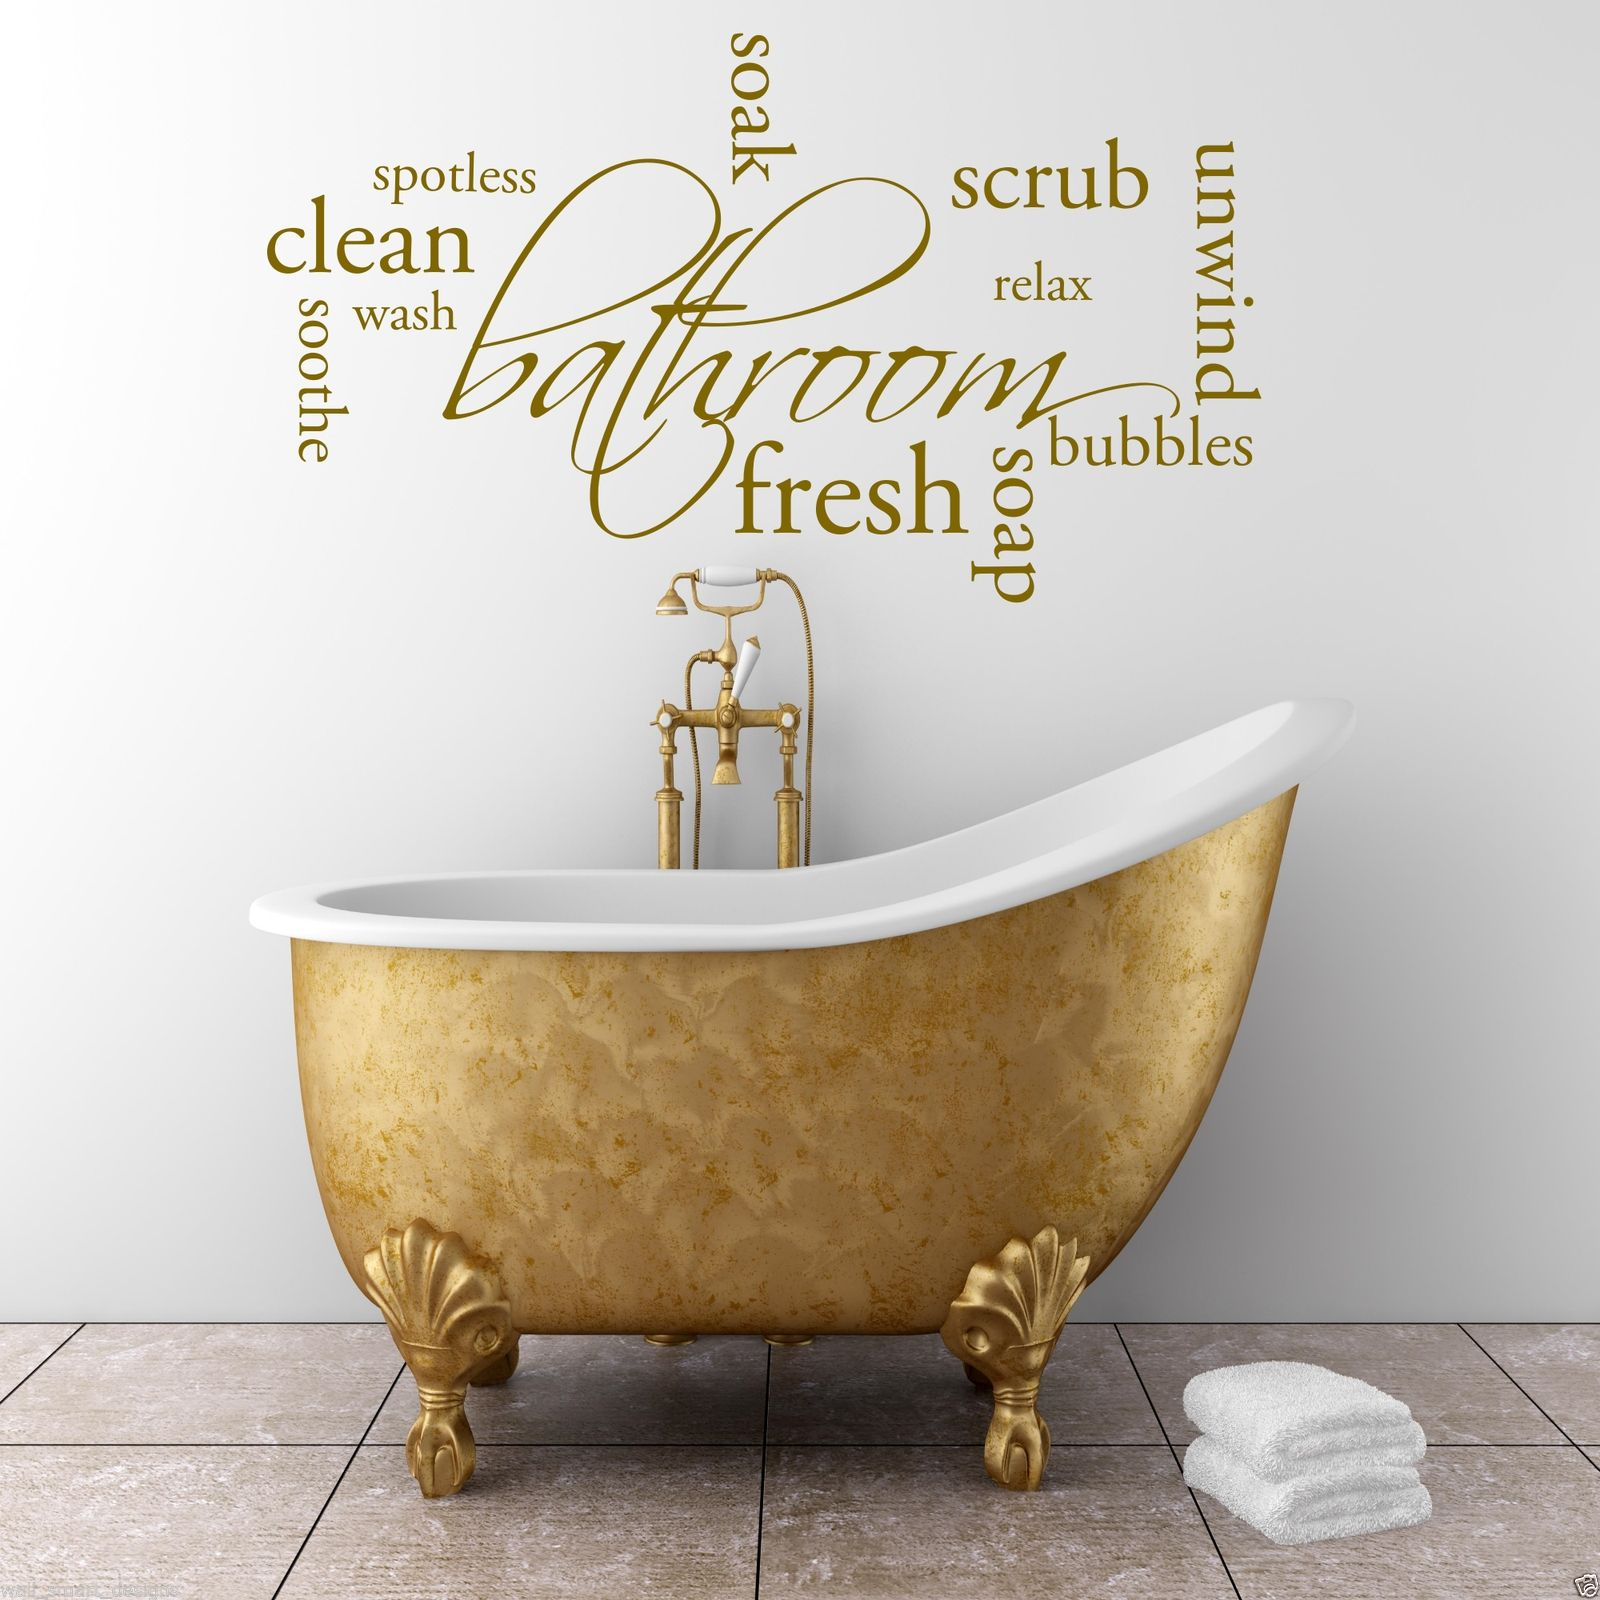 Bathroom wall decor quotes - Relax Soap Bathroom Wall Art Sticker Quote Decal